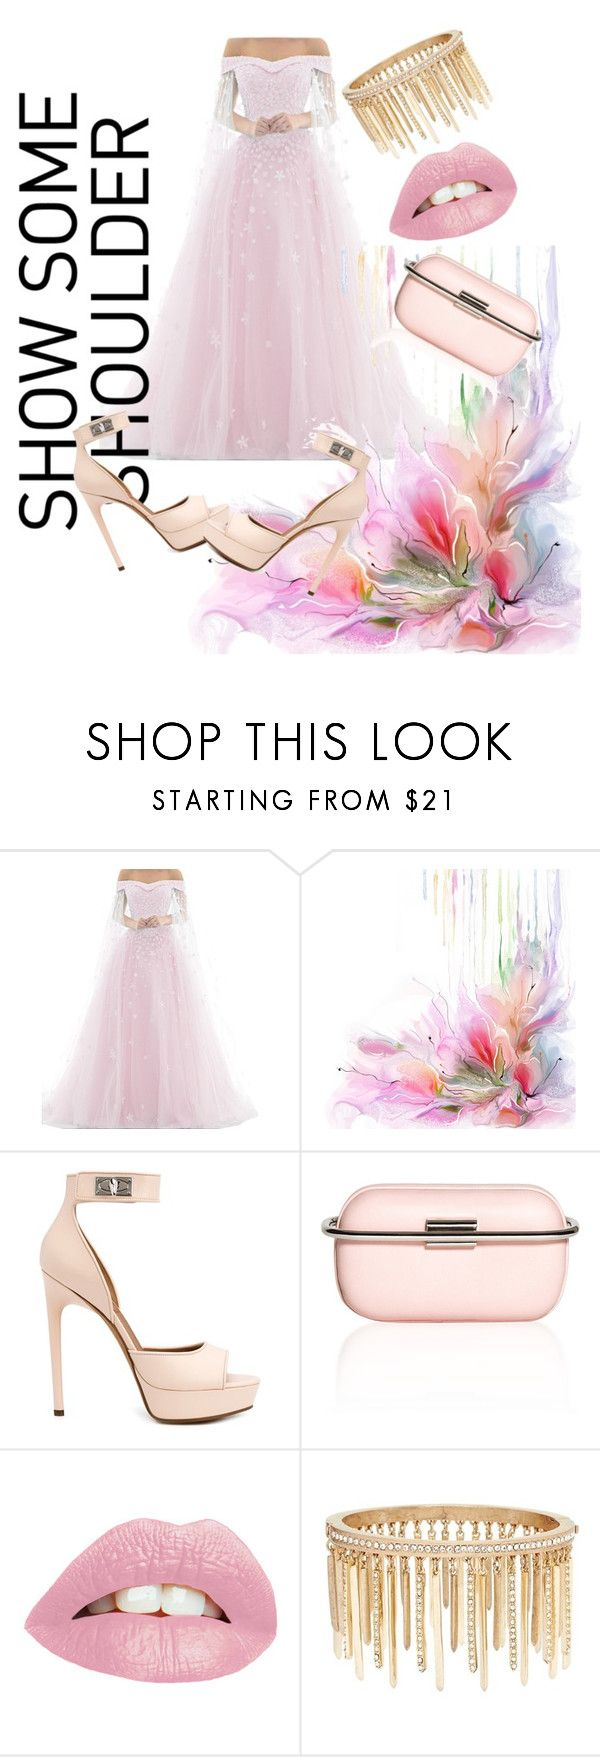 """""""pinky ponky"""" by ishitayadav ❤ liked on Polyvore featuring Givenchy, Corto Moltedo and Jenny Packham"""